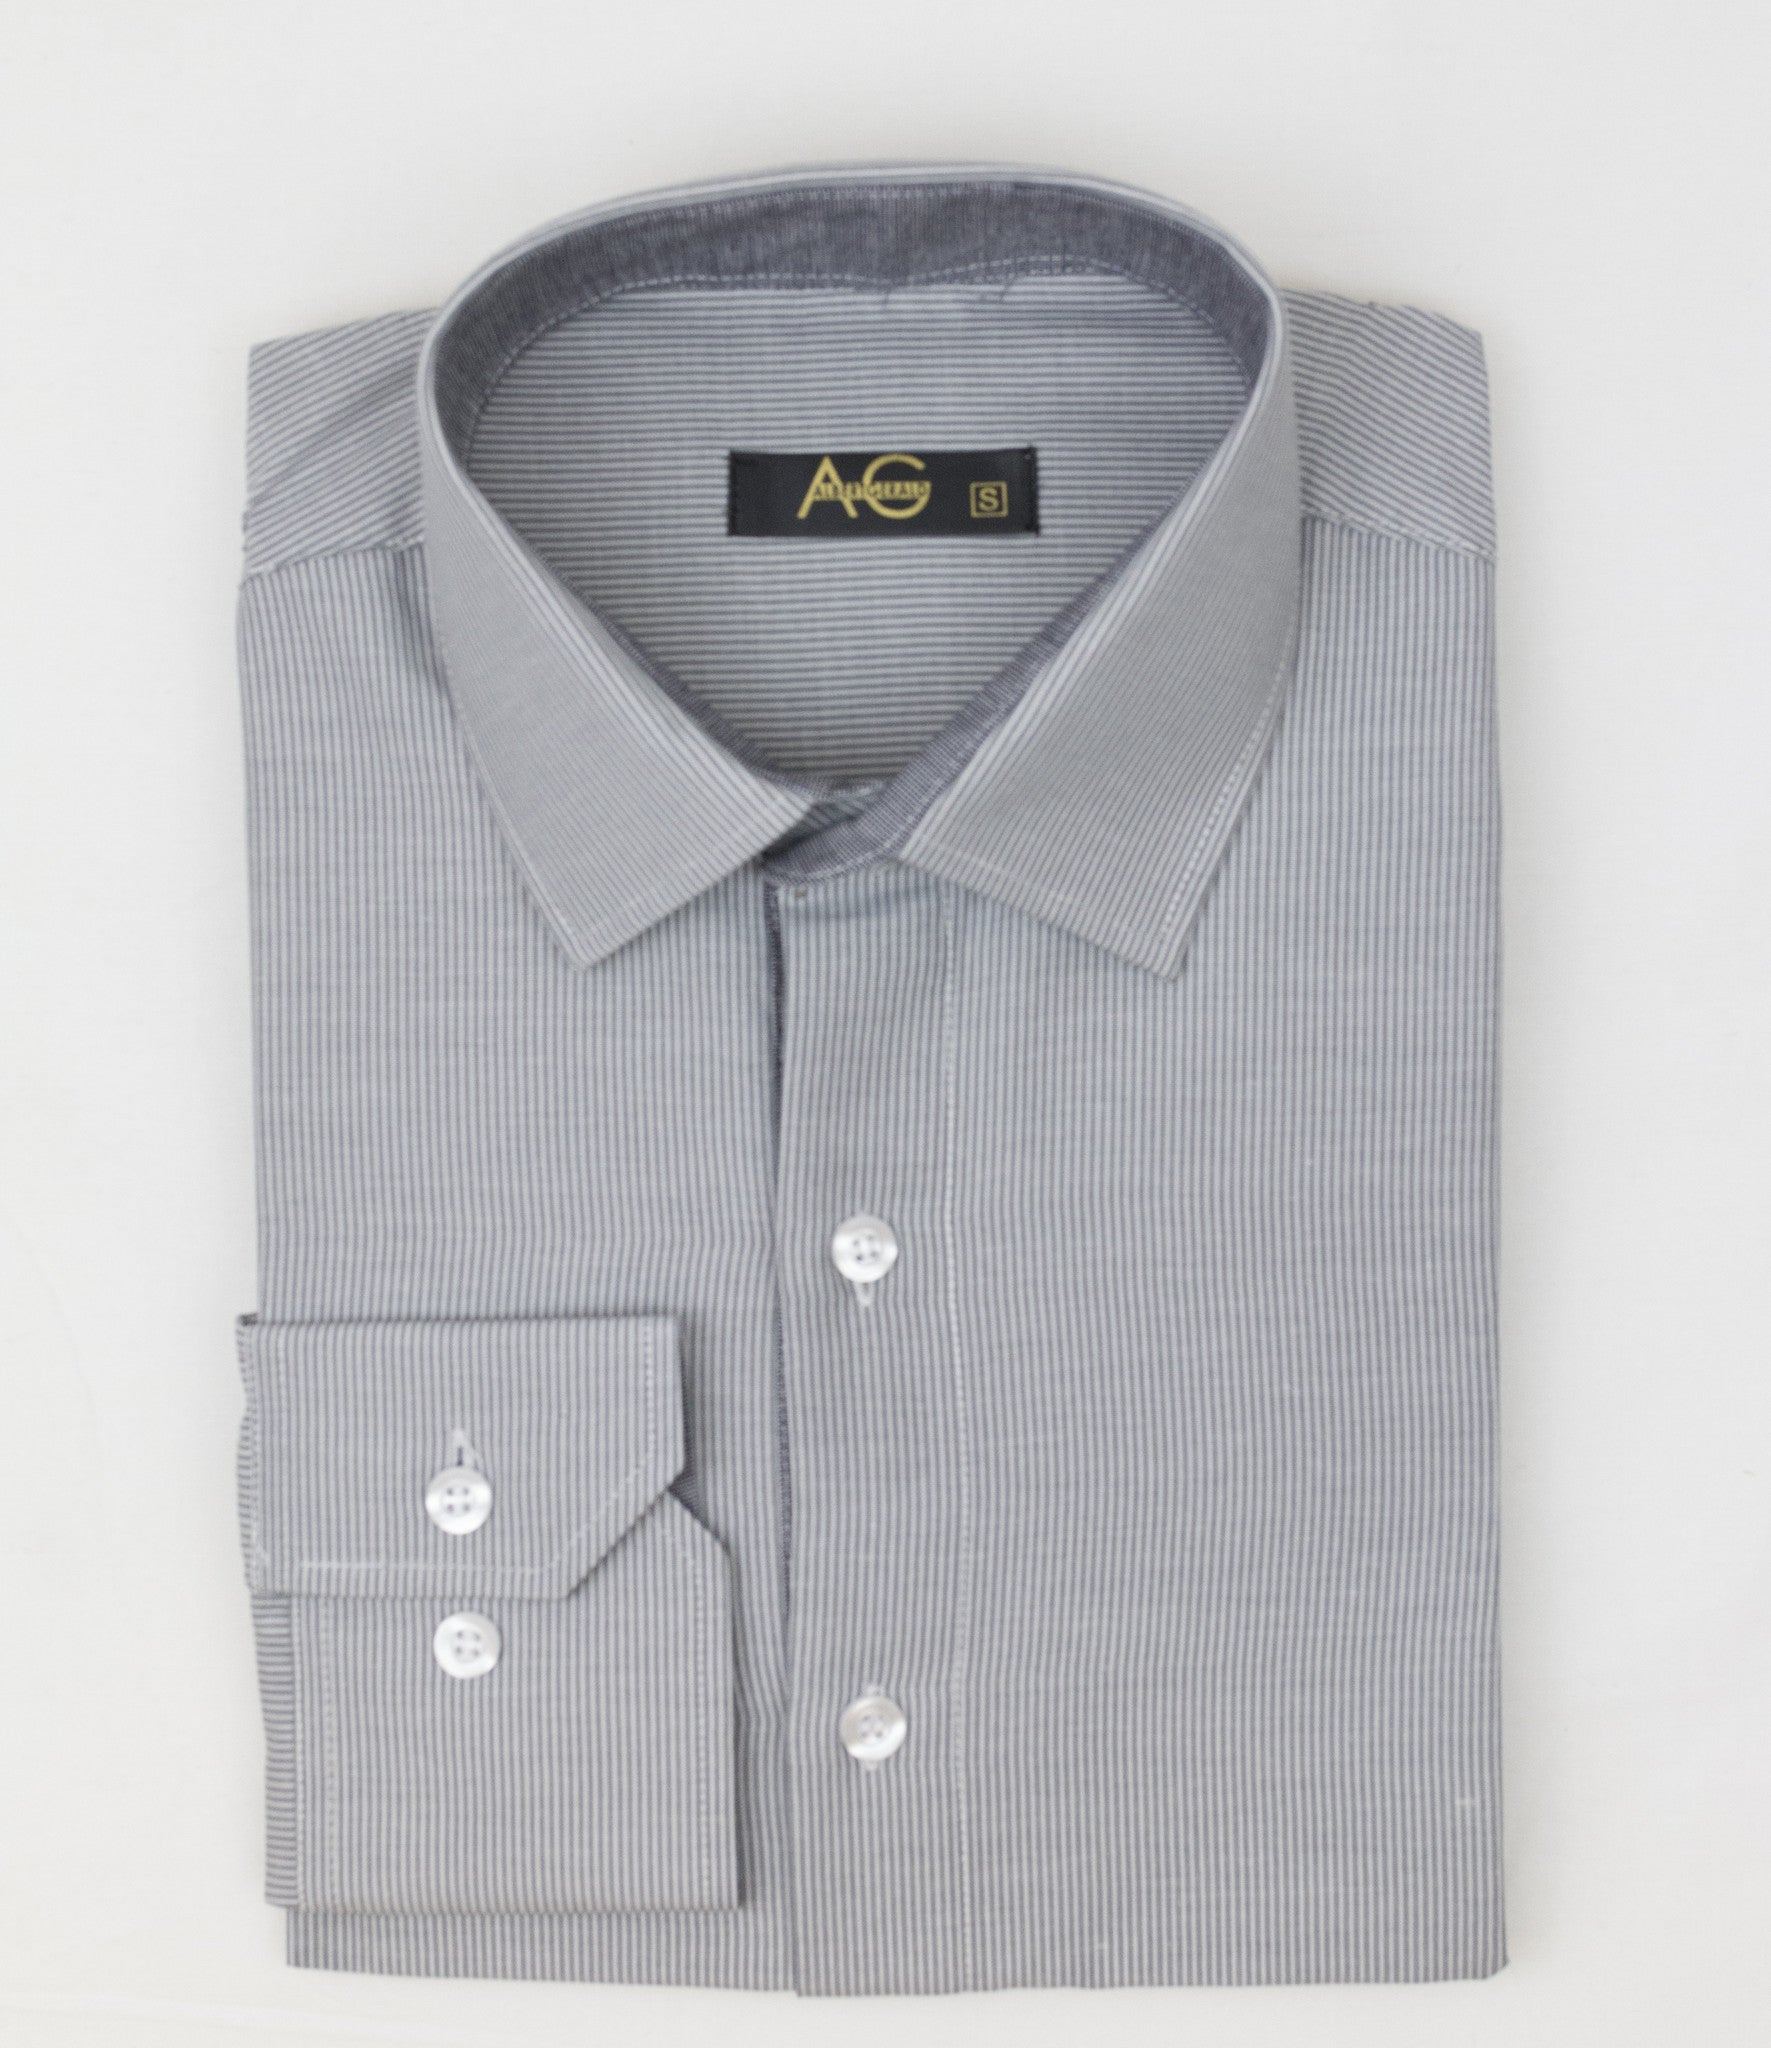 AG Slim Dress Shirt|Grey-White Striped